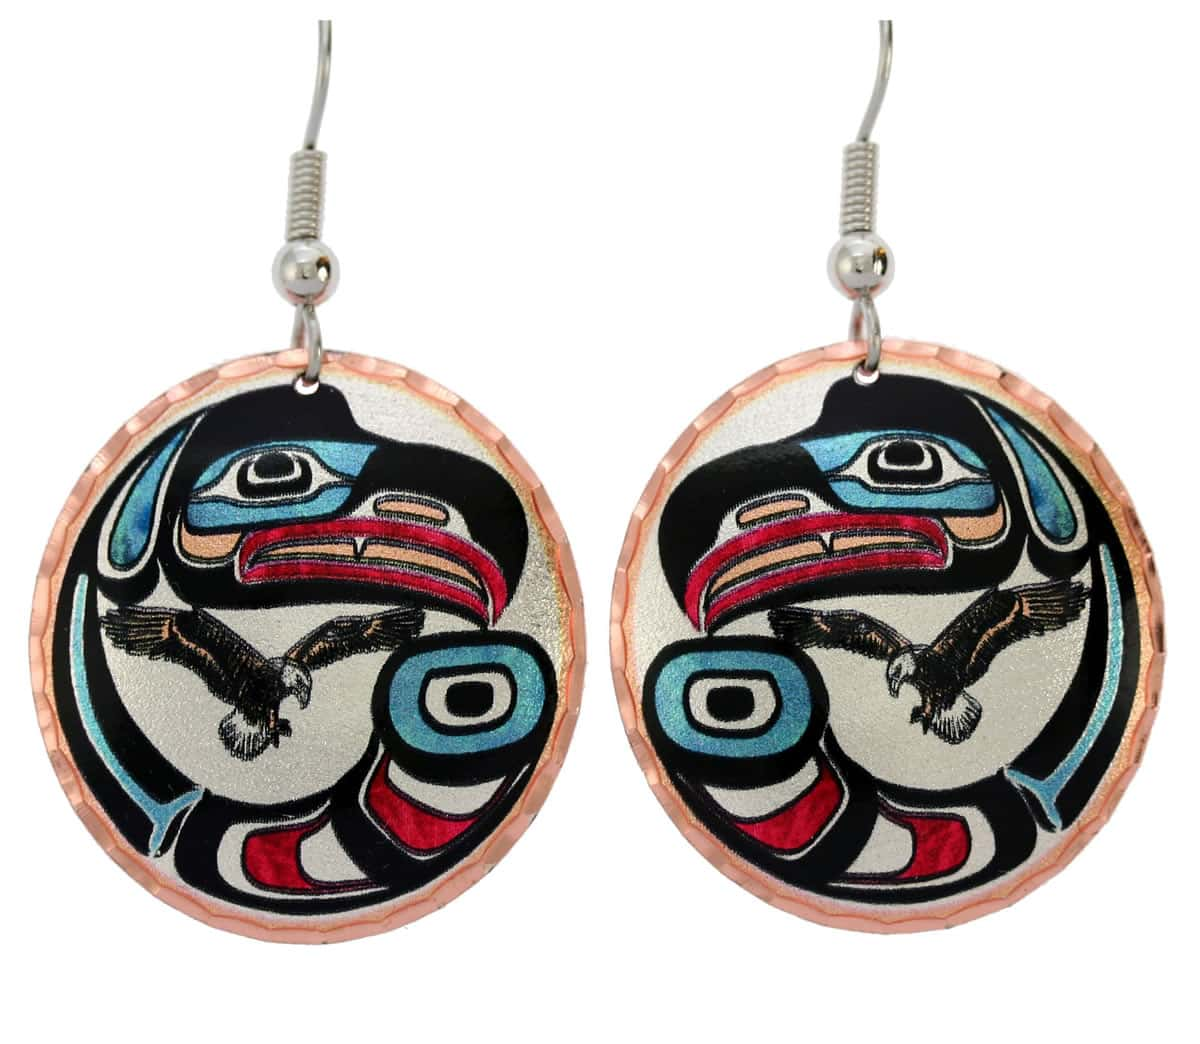 Northwest Native eagle earrings handmade in vibrant colors to brighten up your days